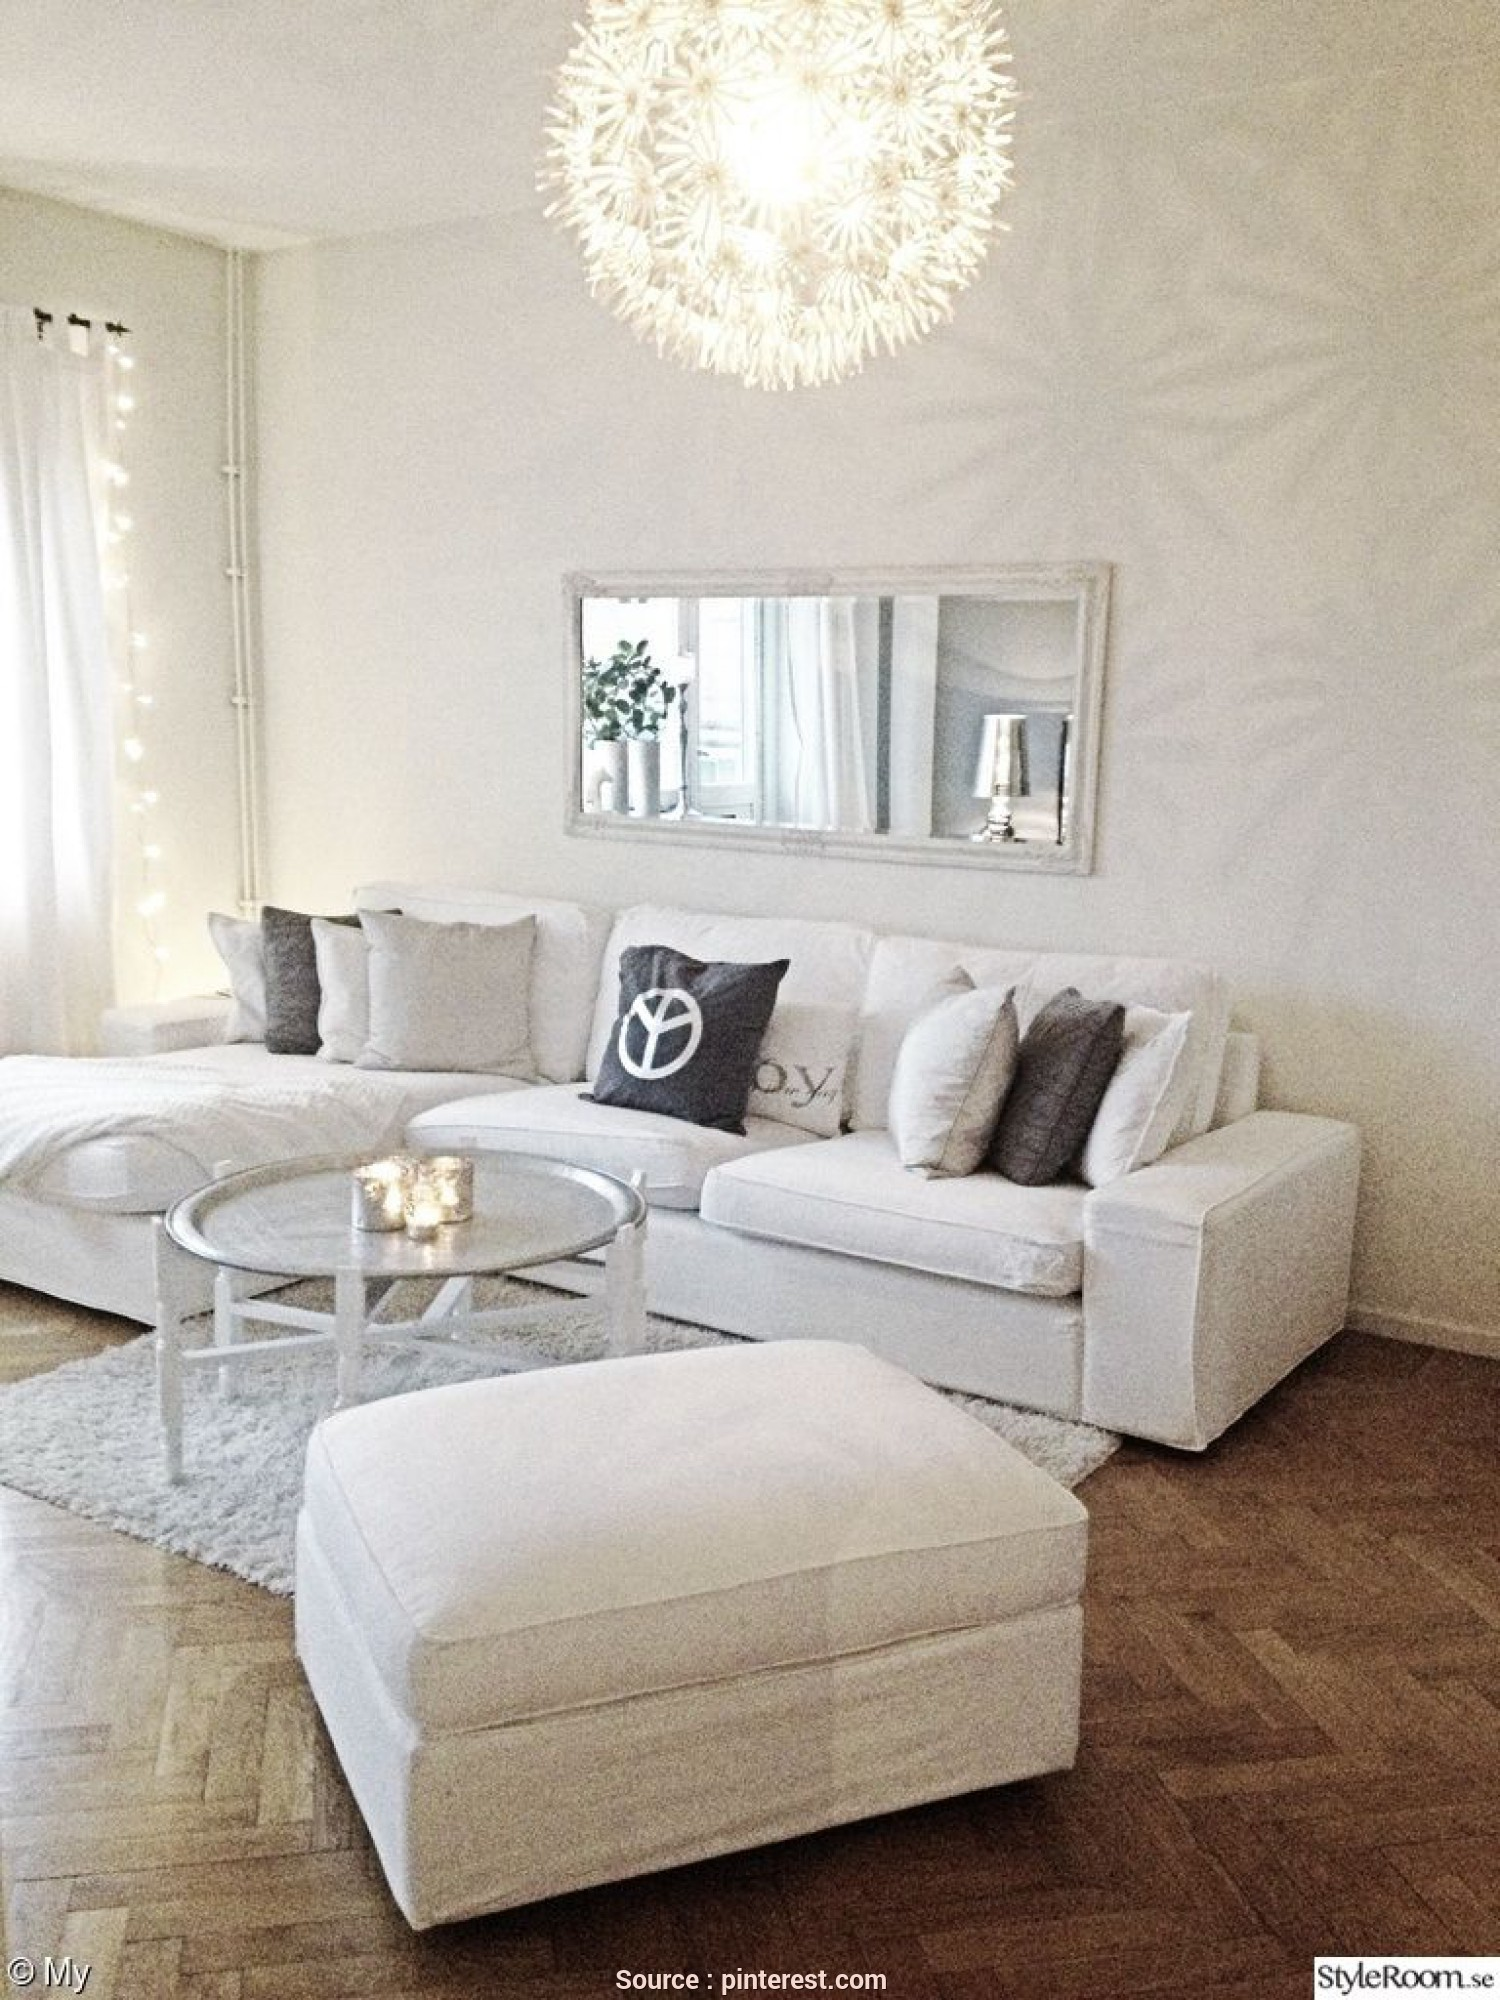 Divano Shabby Chic Ikea, Elegante How To Decorate Your Living Room With, Kivik Sofa From Ikea, SOFA, FOOTSTOOL-, Be Used As, Chaise Lounge